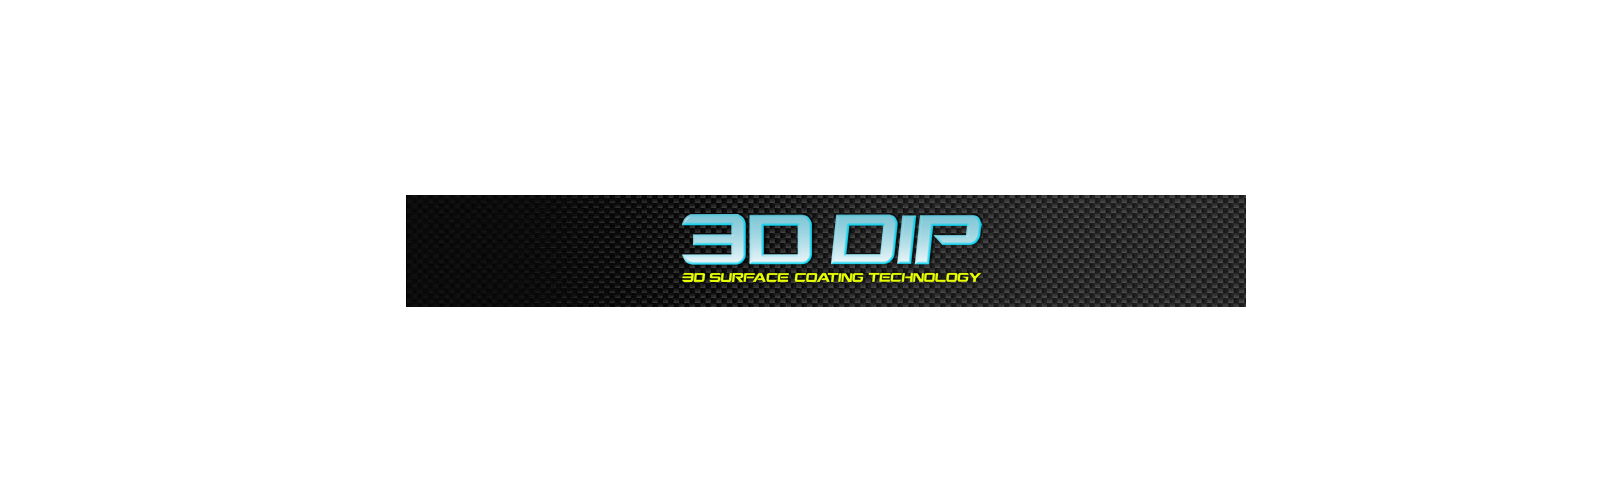 http://www.3d-dip.co.uk/